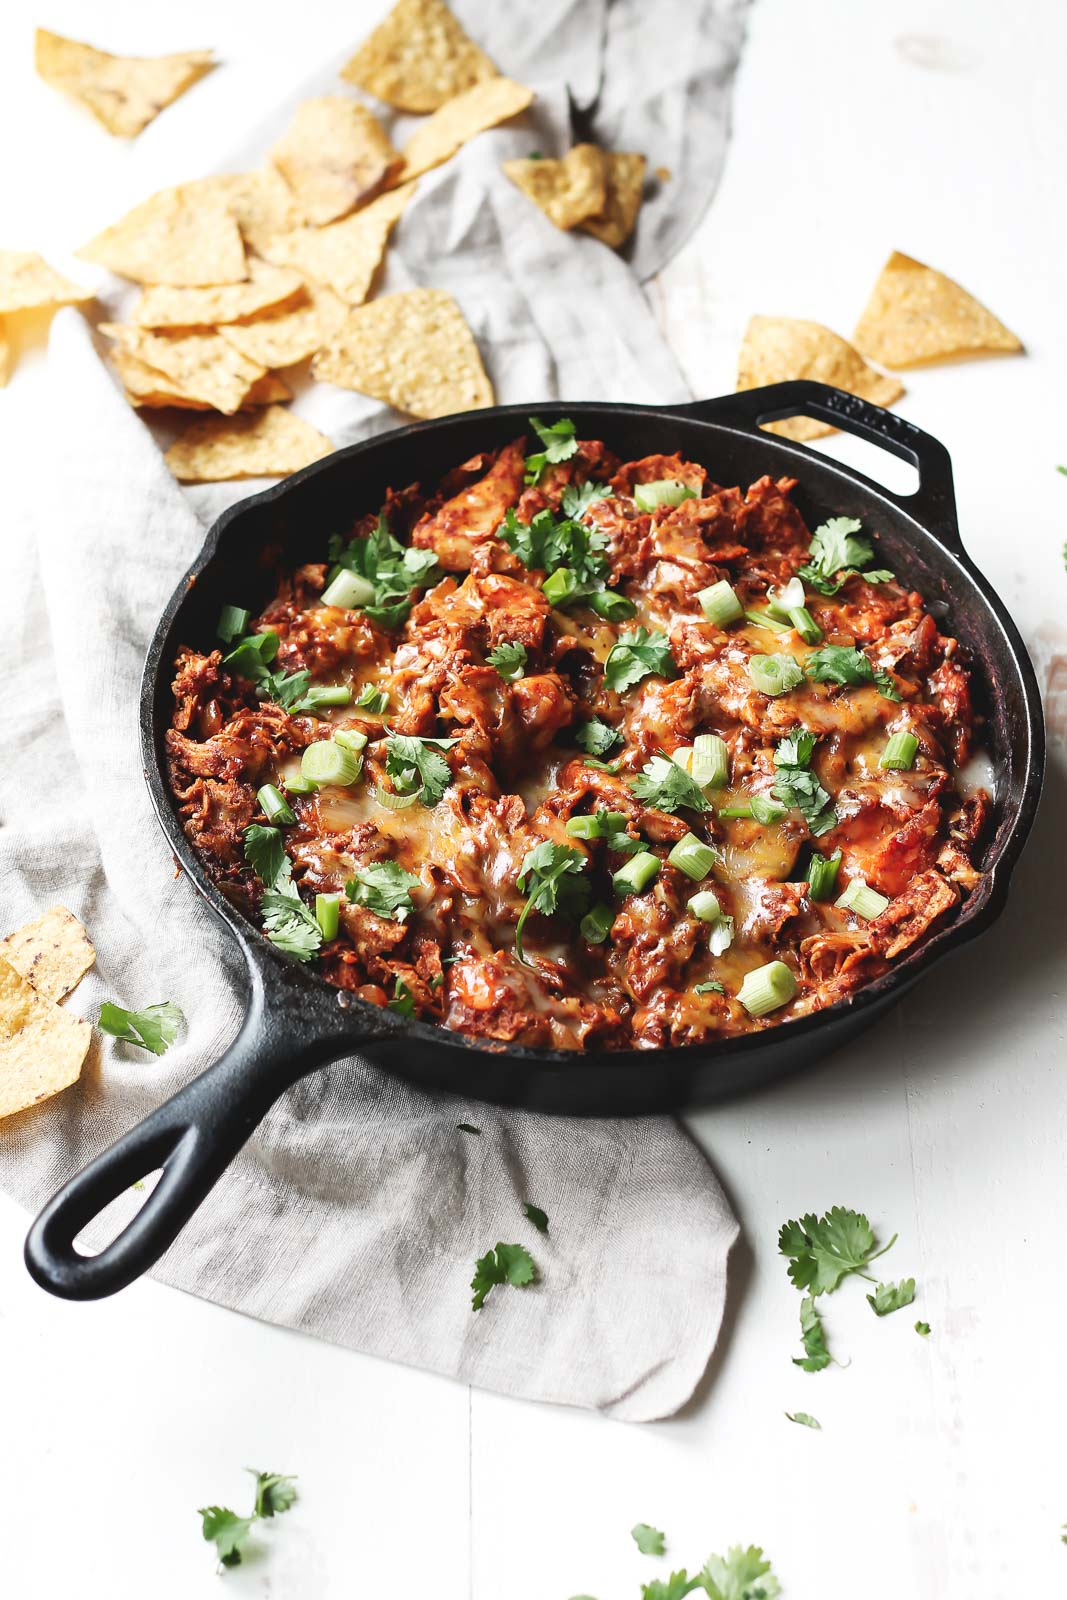 Sweet Potato & Turkey Enchilada Skillet next to tortilla chips